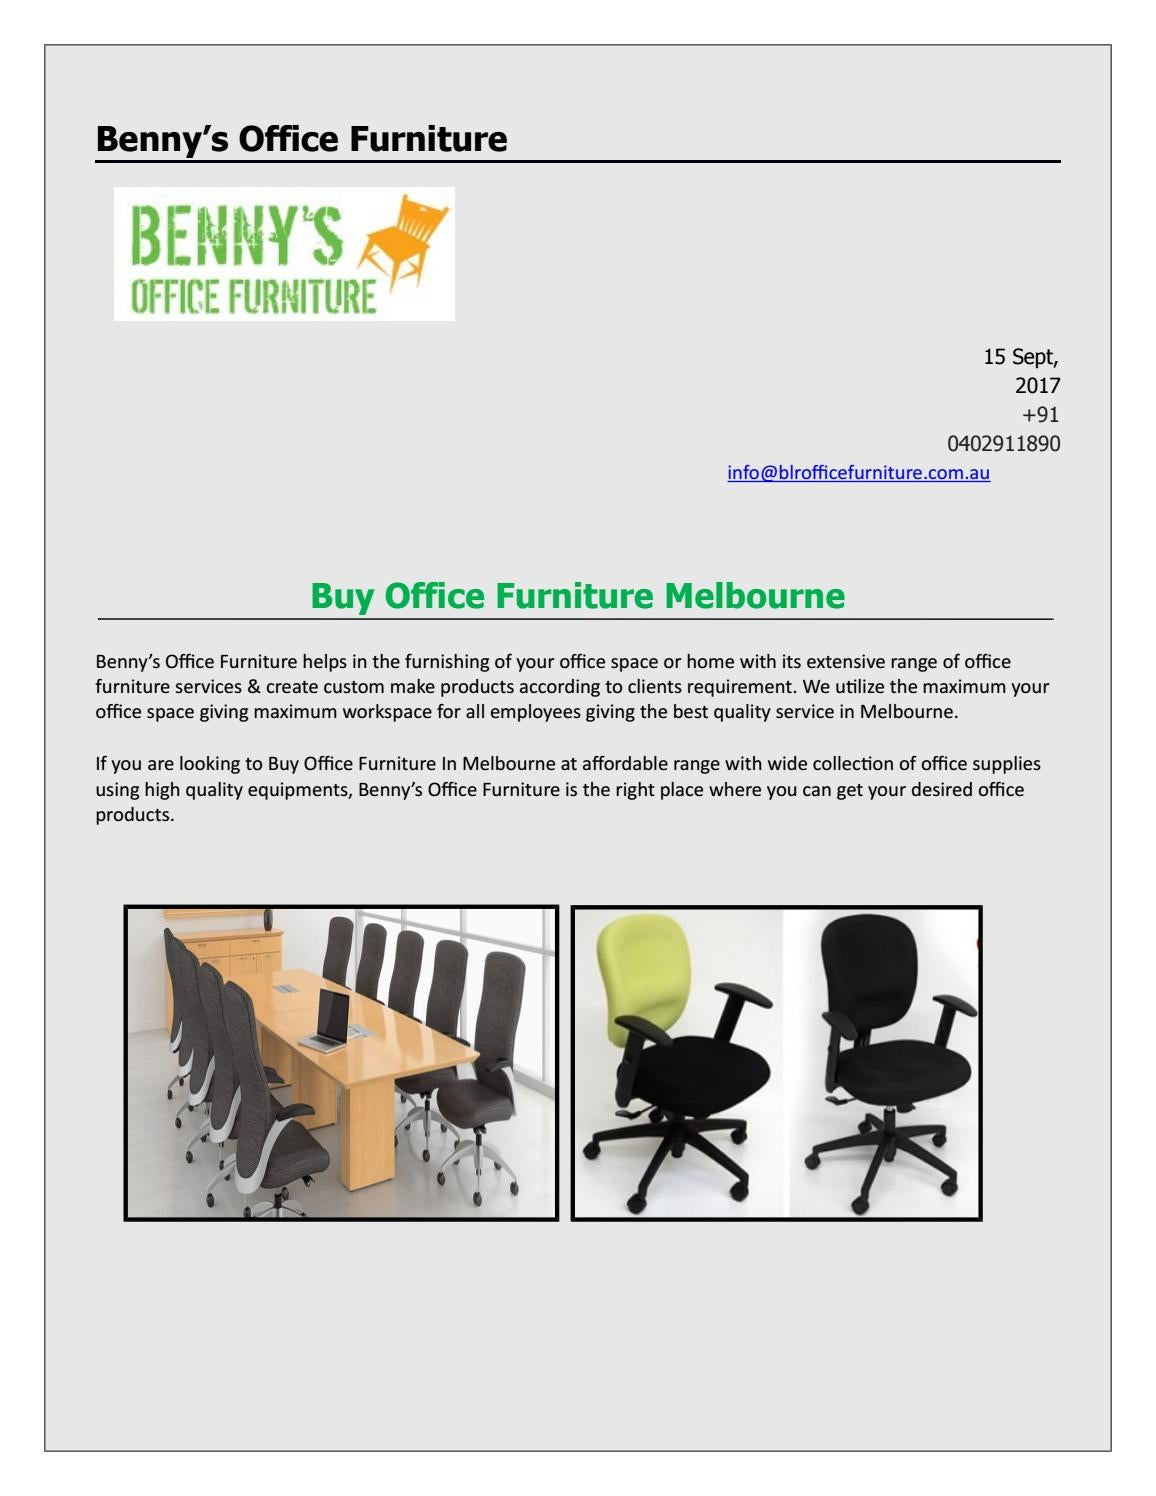 Buy Furniture Melbourne Buy Cheapest Office Furniture Melbourne By Benny 39s Office